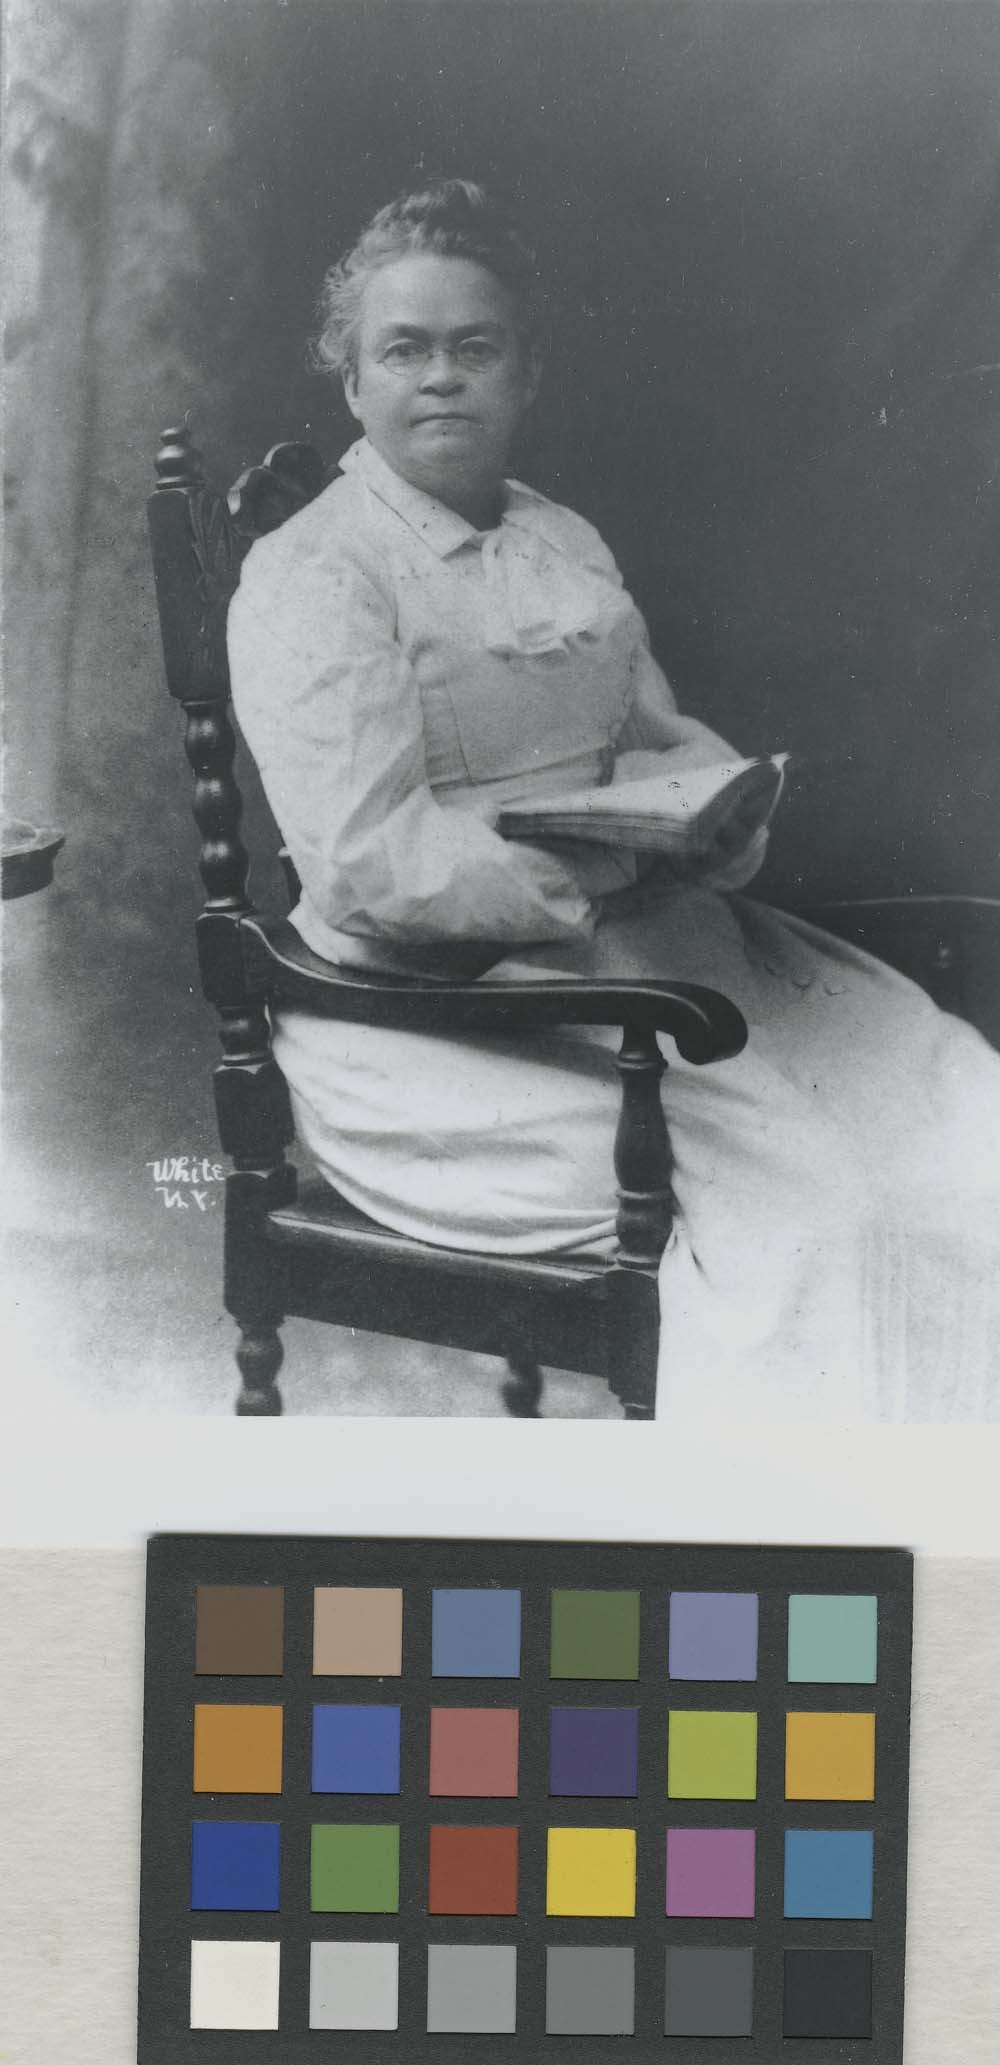 Carry Amelia Nation seated in a chair holding a book